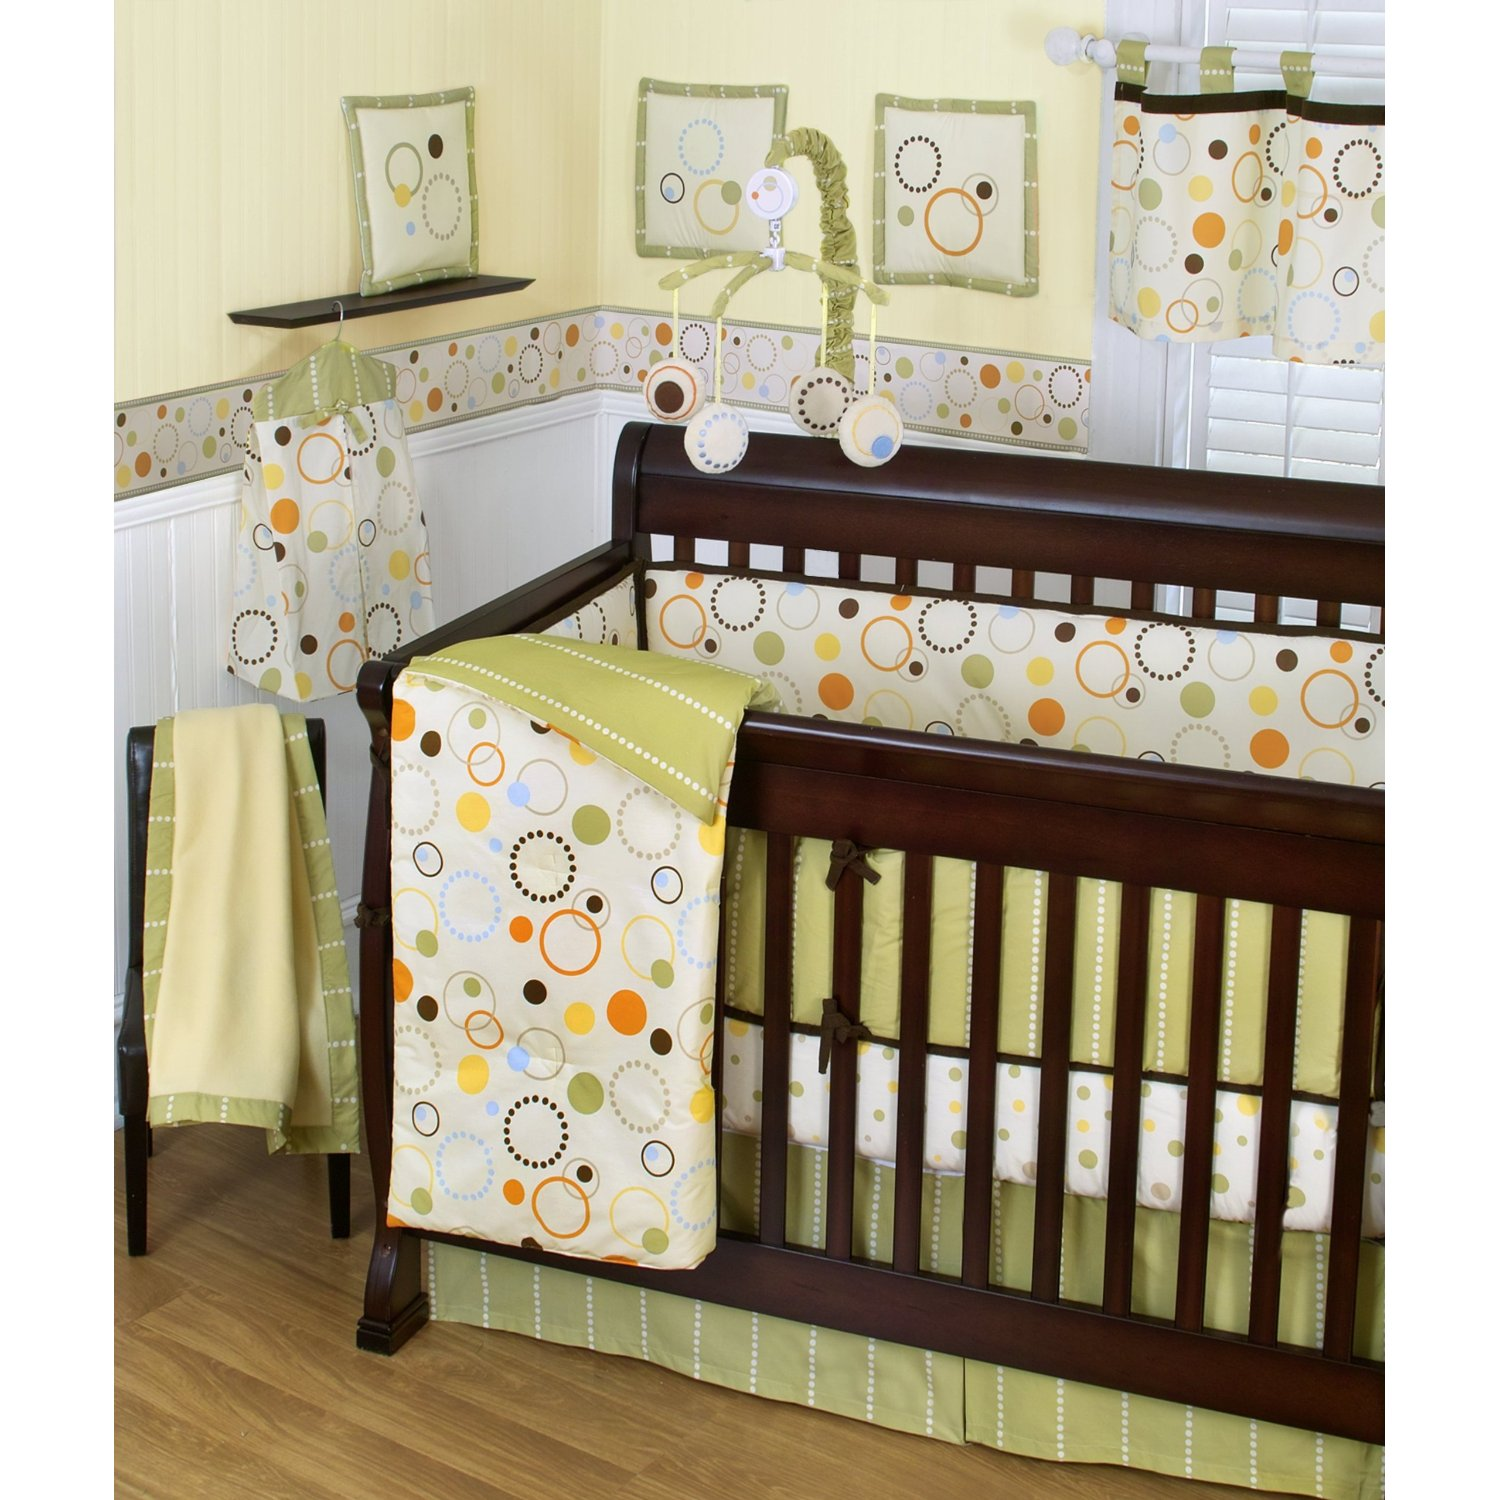 Crib bedding sale uk - Baby Nursery Bedding Sets Neutral Uk Bed Bugs Images Mattress